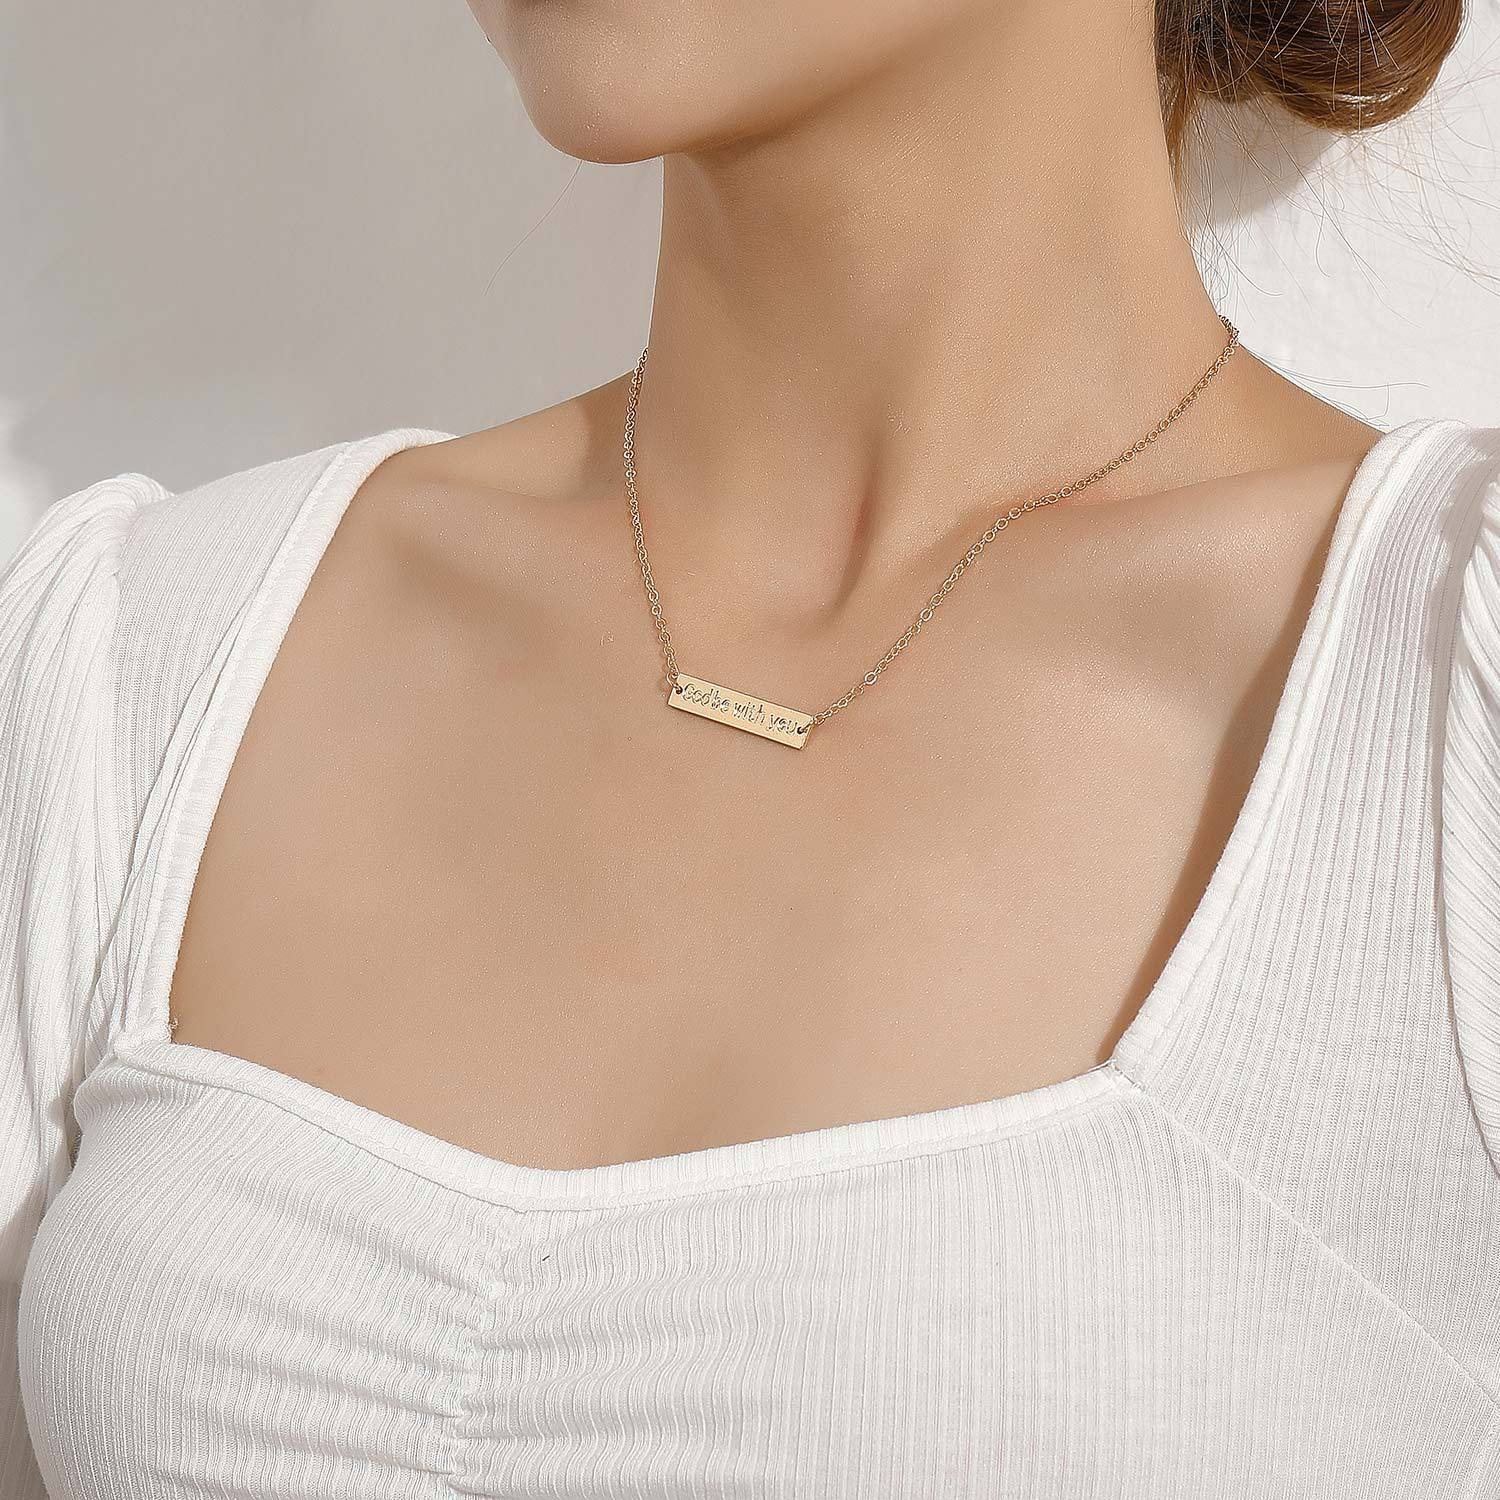 God Be with You Tag Pendant Necklace for Women Gold Silver Color Clavicle Chain Short Necklaces Female 2020 Fashion Jewelry New